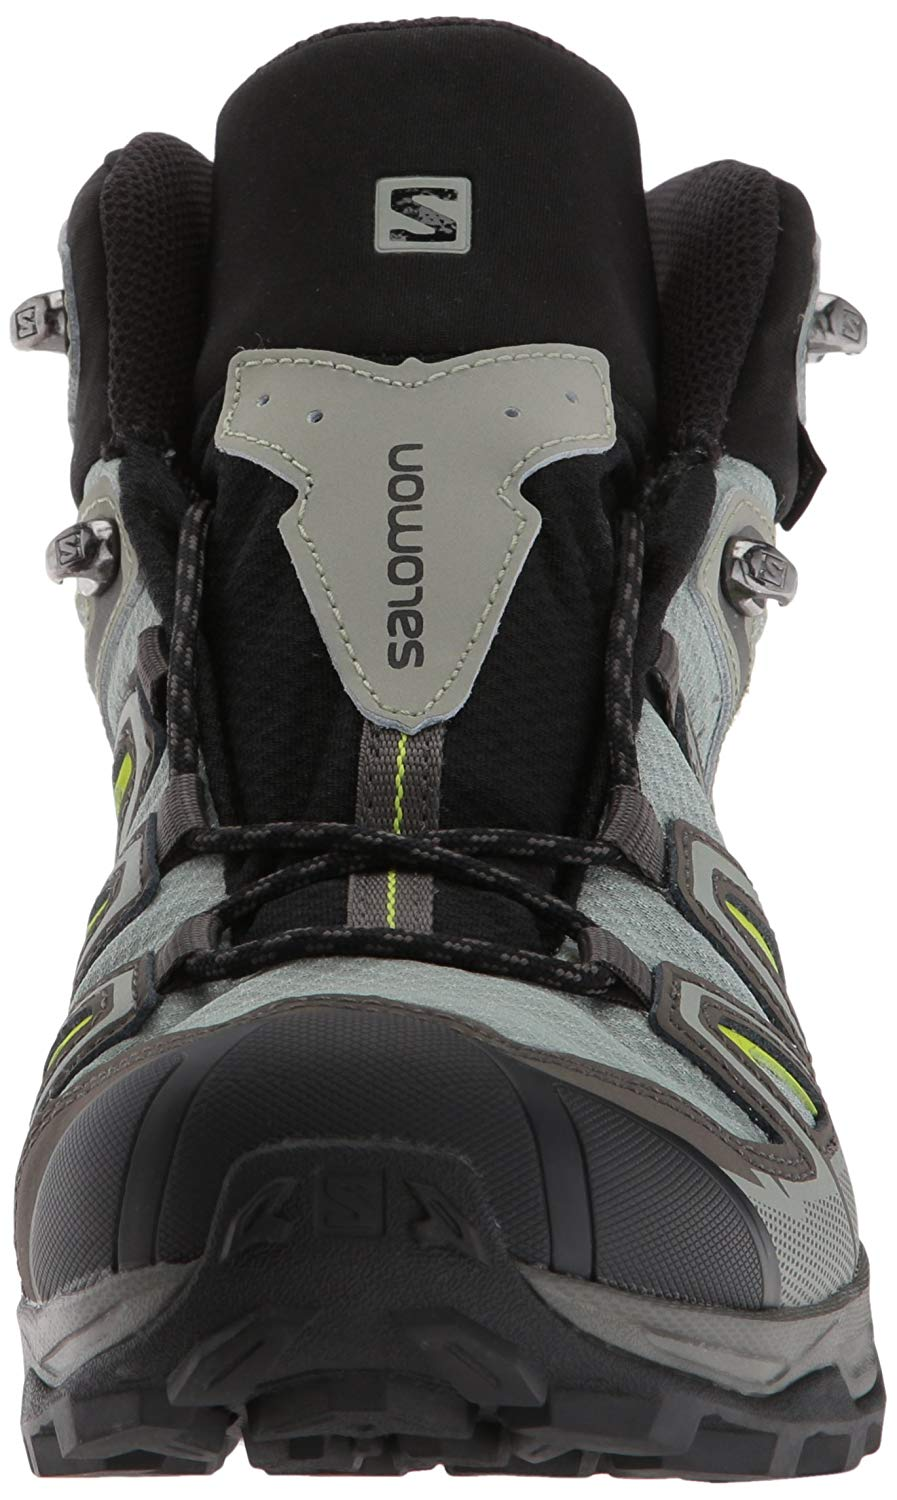 best service e9d3b 8d974 Salomon Men's X Ultra 3 Mid GTX Hiking Boot | Walmart Canada